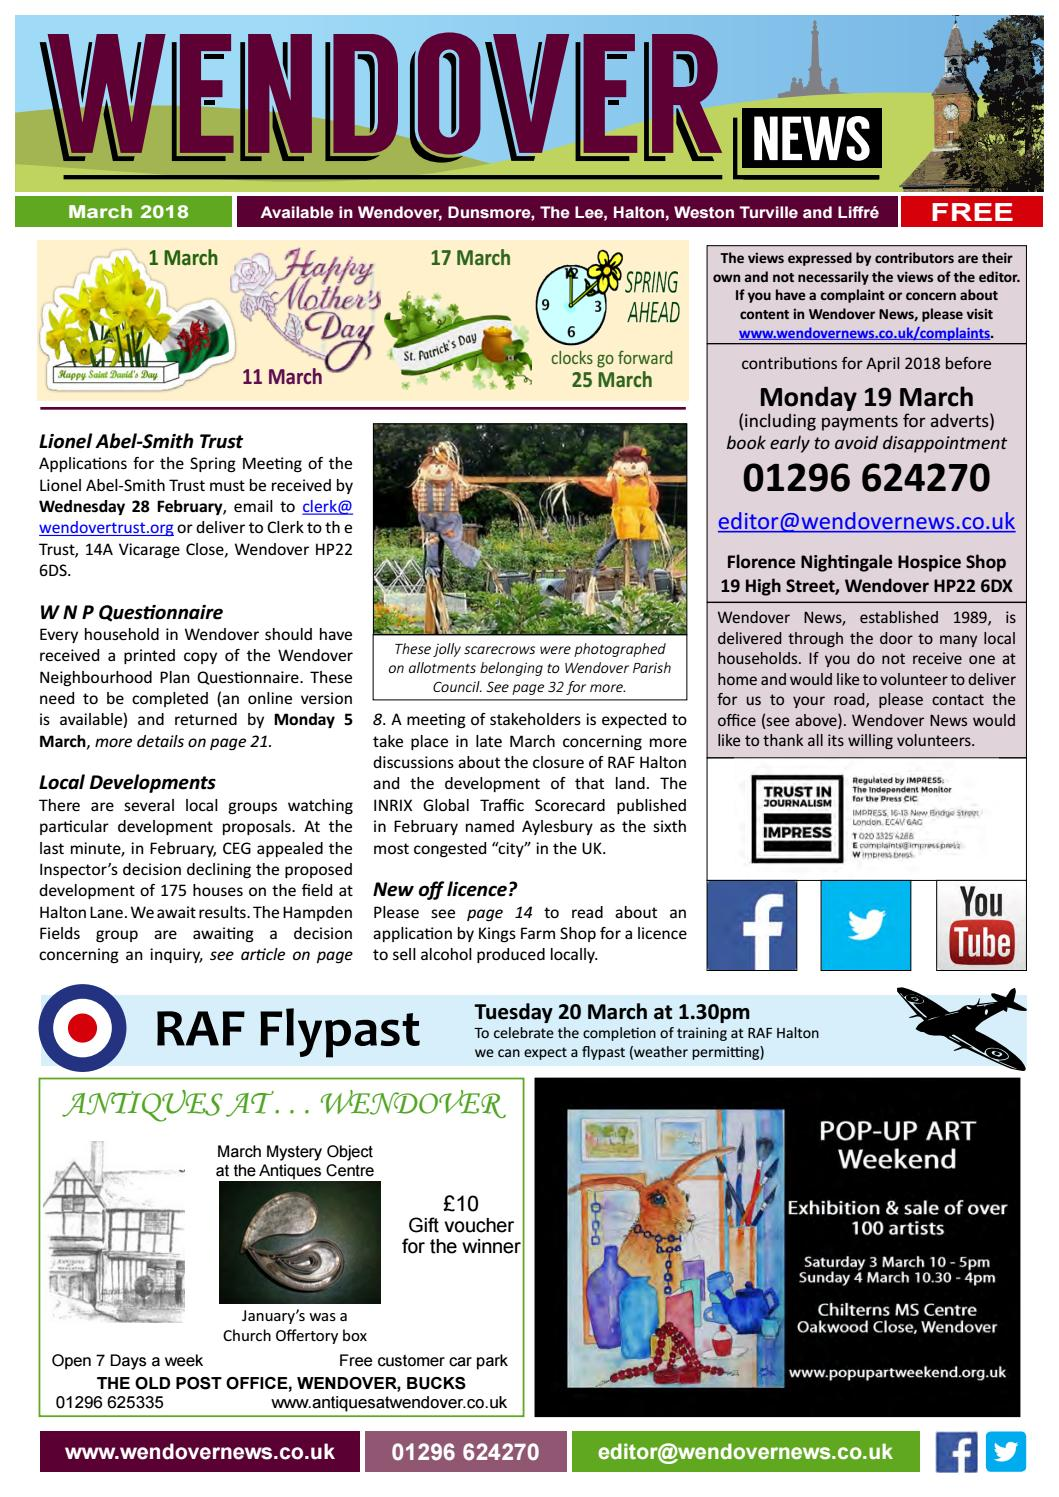 f7cab3d9d9ca Wendover News March 2018 by Wendover News - issuu